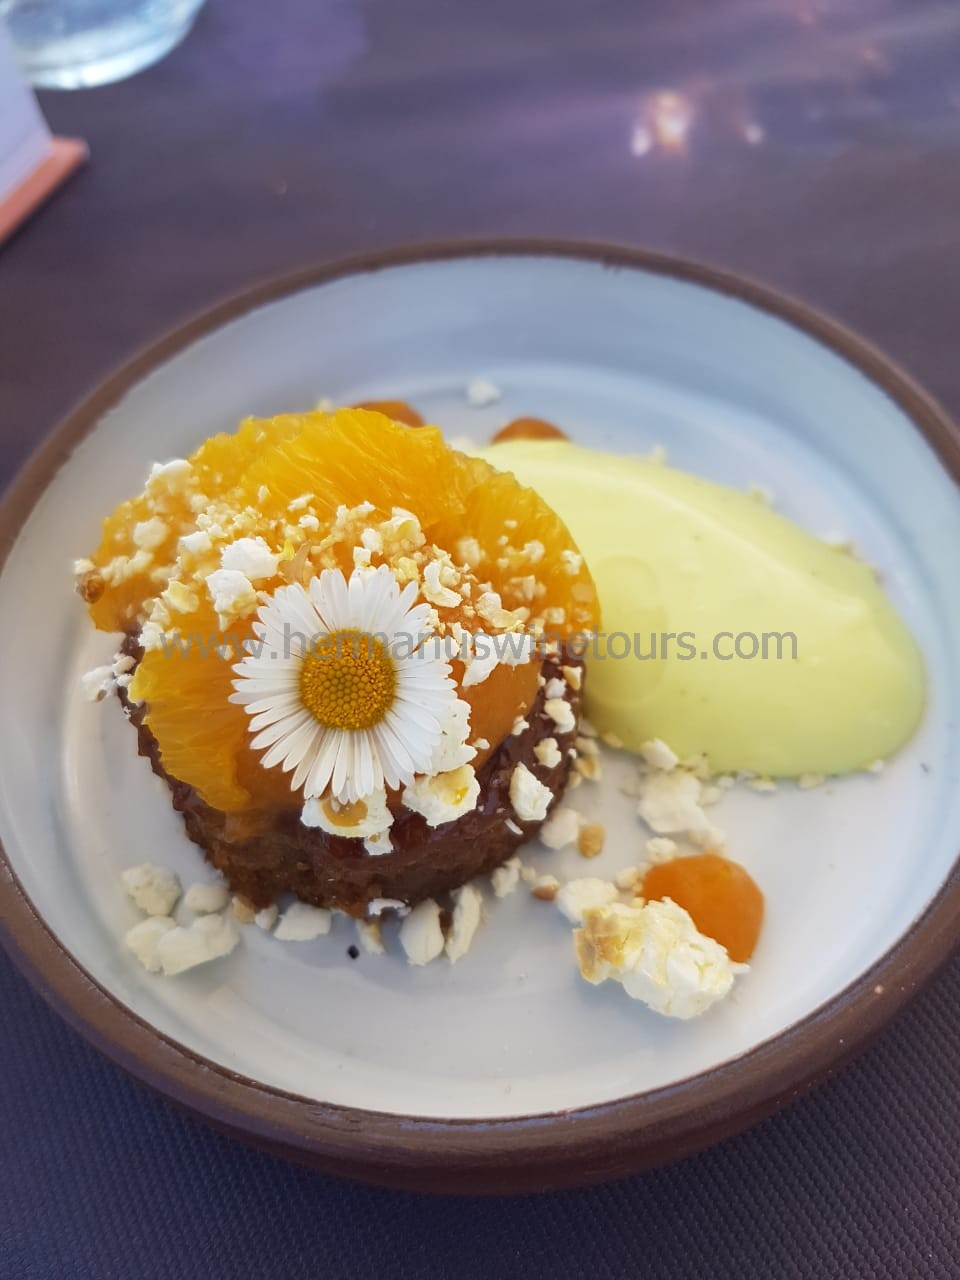 Malva orange pudding with popcorn, Hermanus restaurant, near Cape Town, South Africa